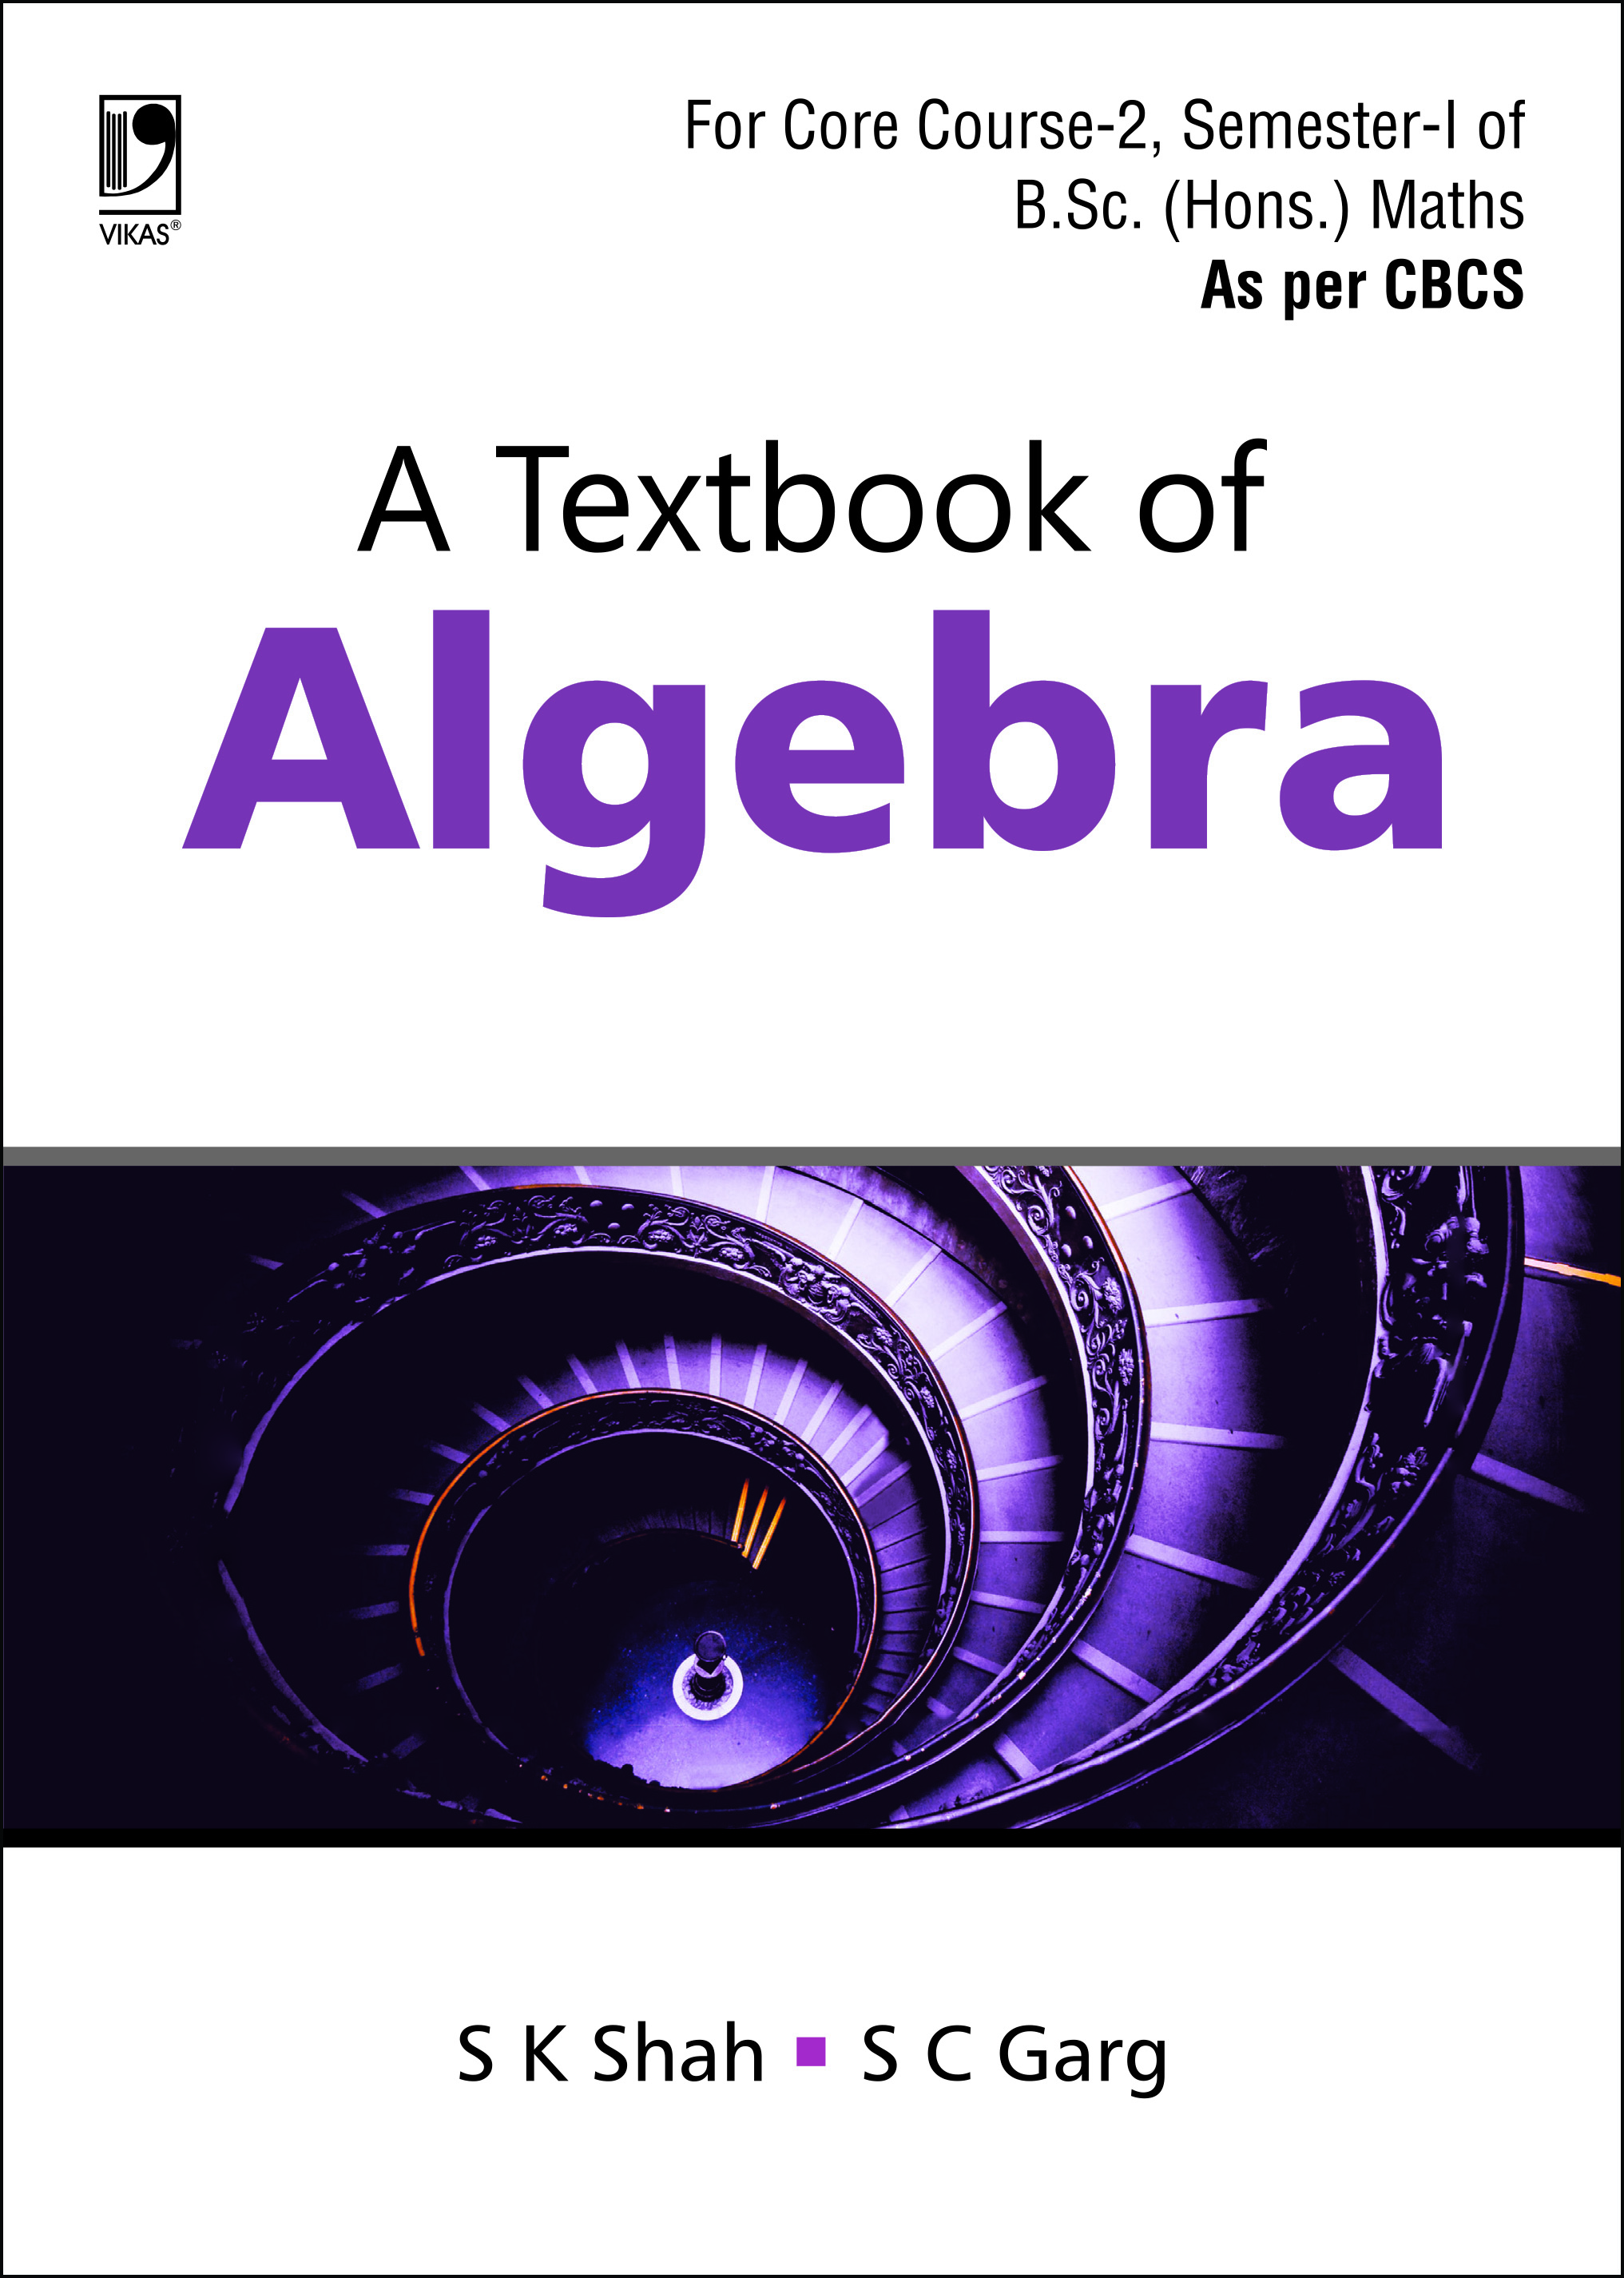 A Textbook of Algebra: (For B.Sc. (Hons.) Semester-I, As per CBCS) by  Sudesh K Shah